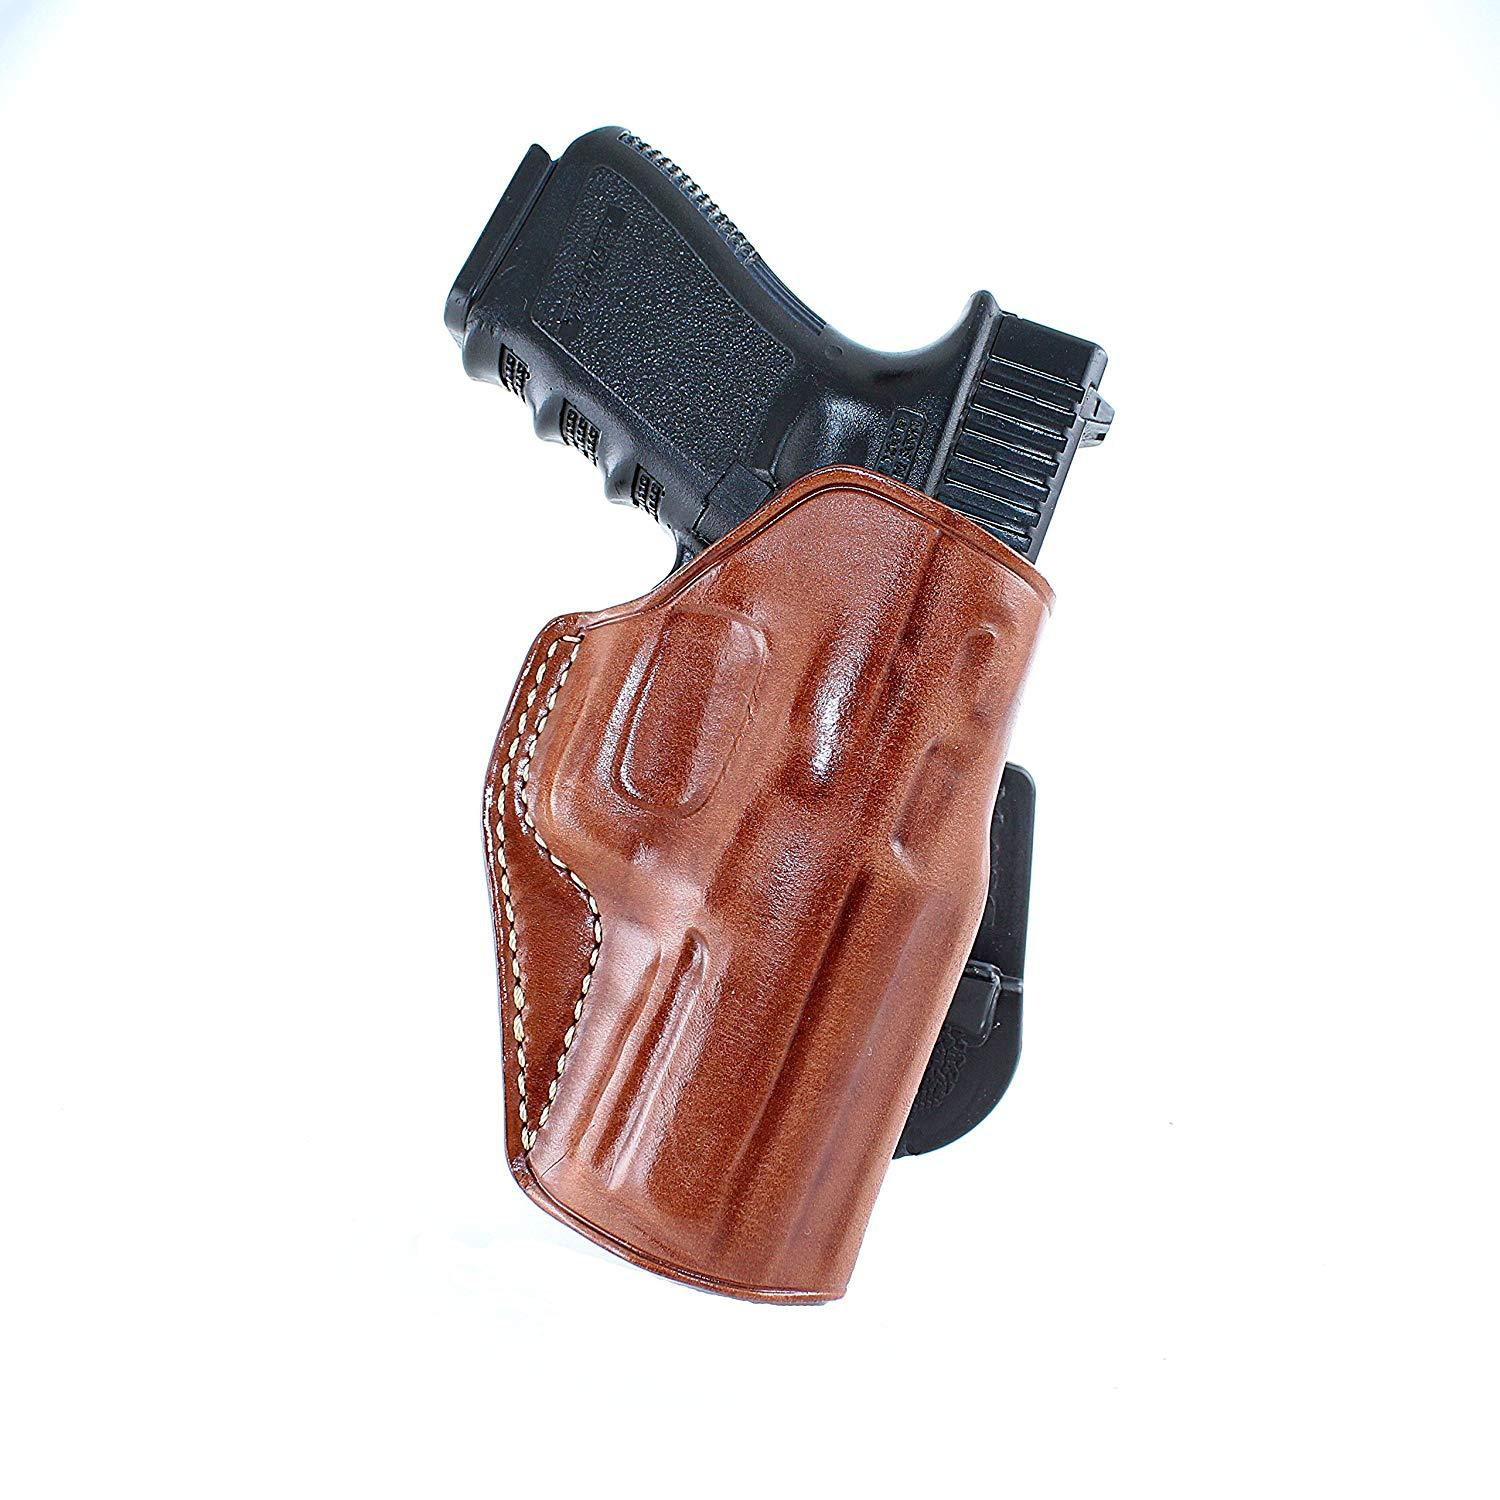 Masc Leather Paddle Holster (Owb) With Open and 50 similar items